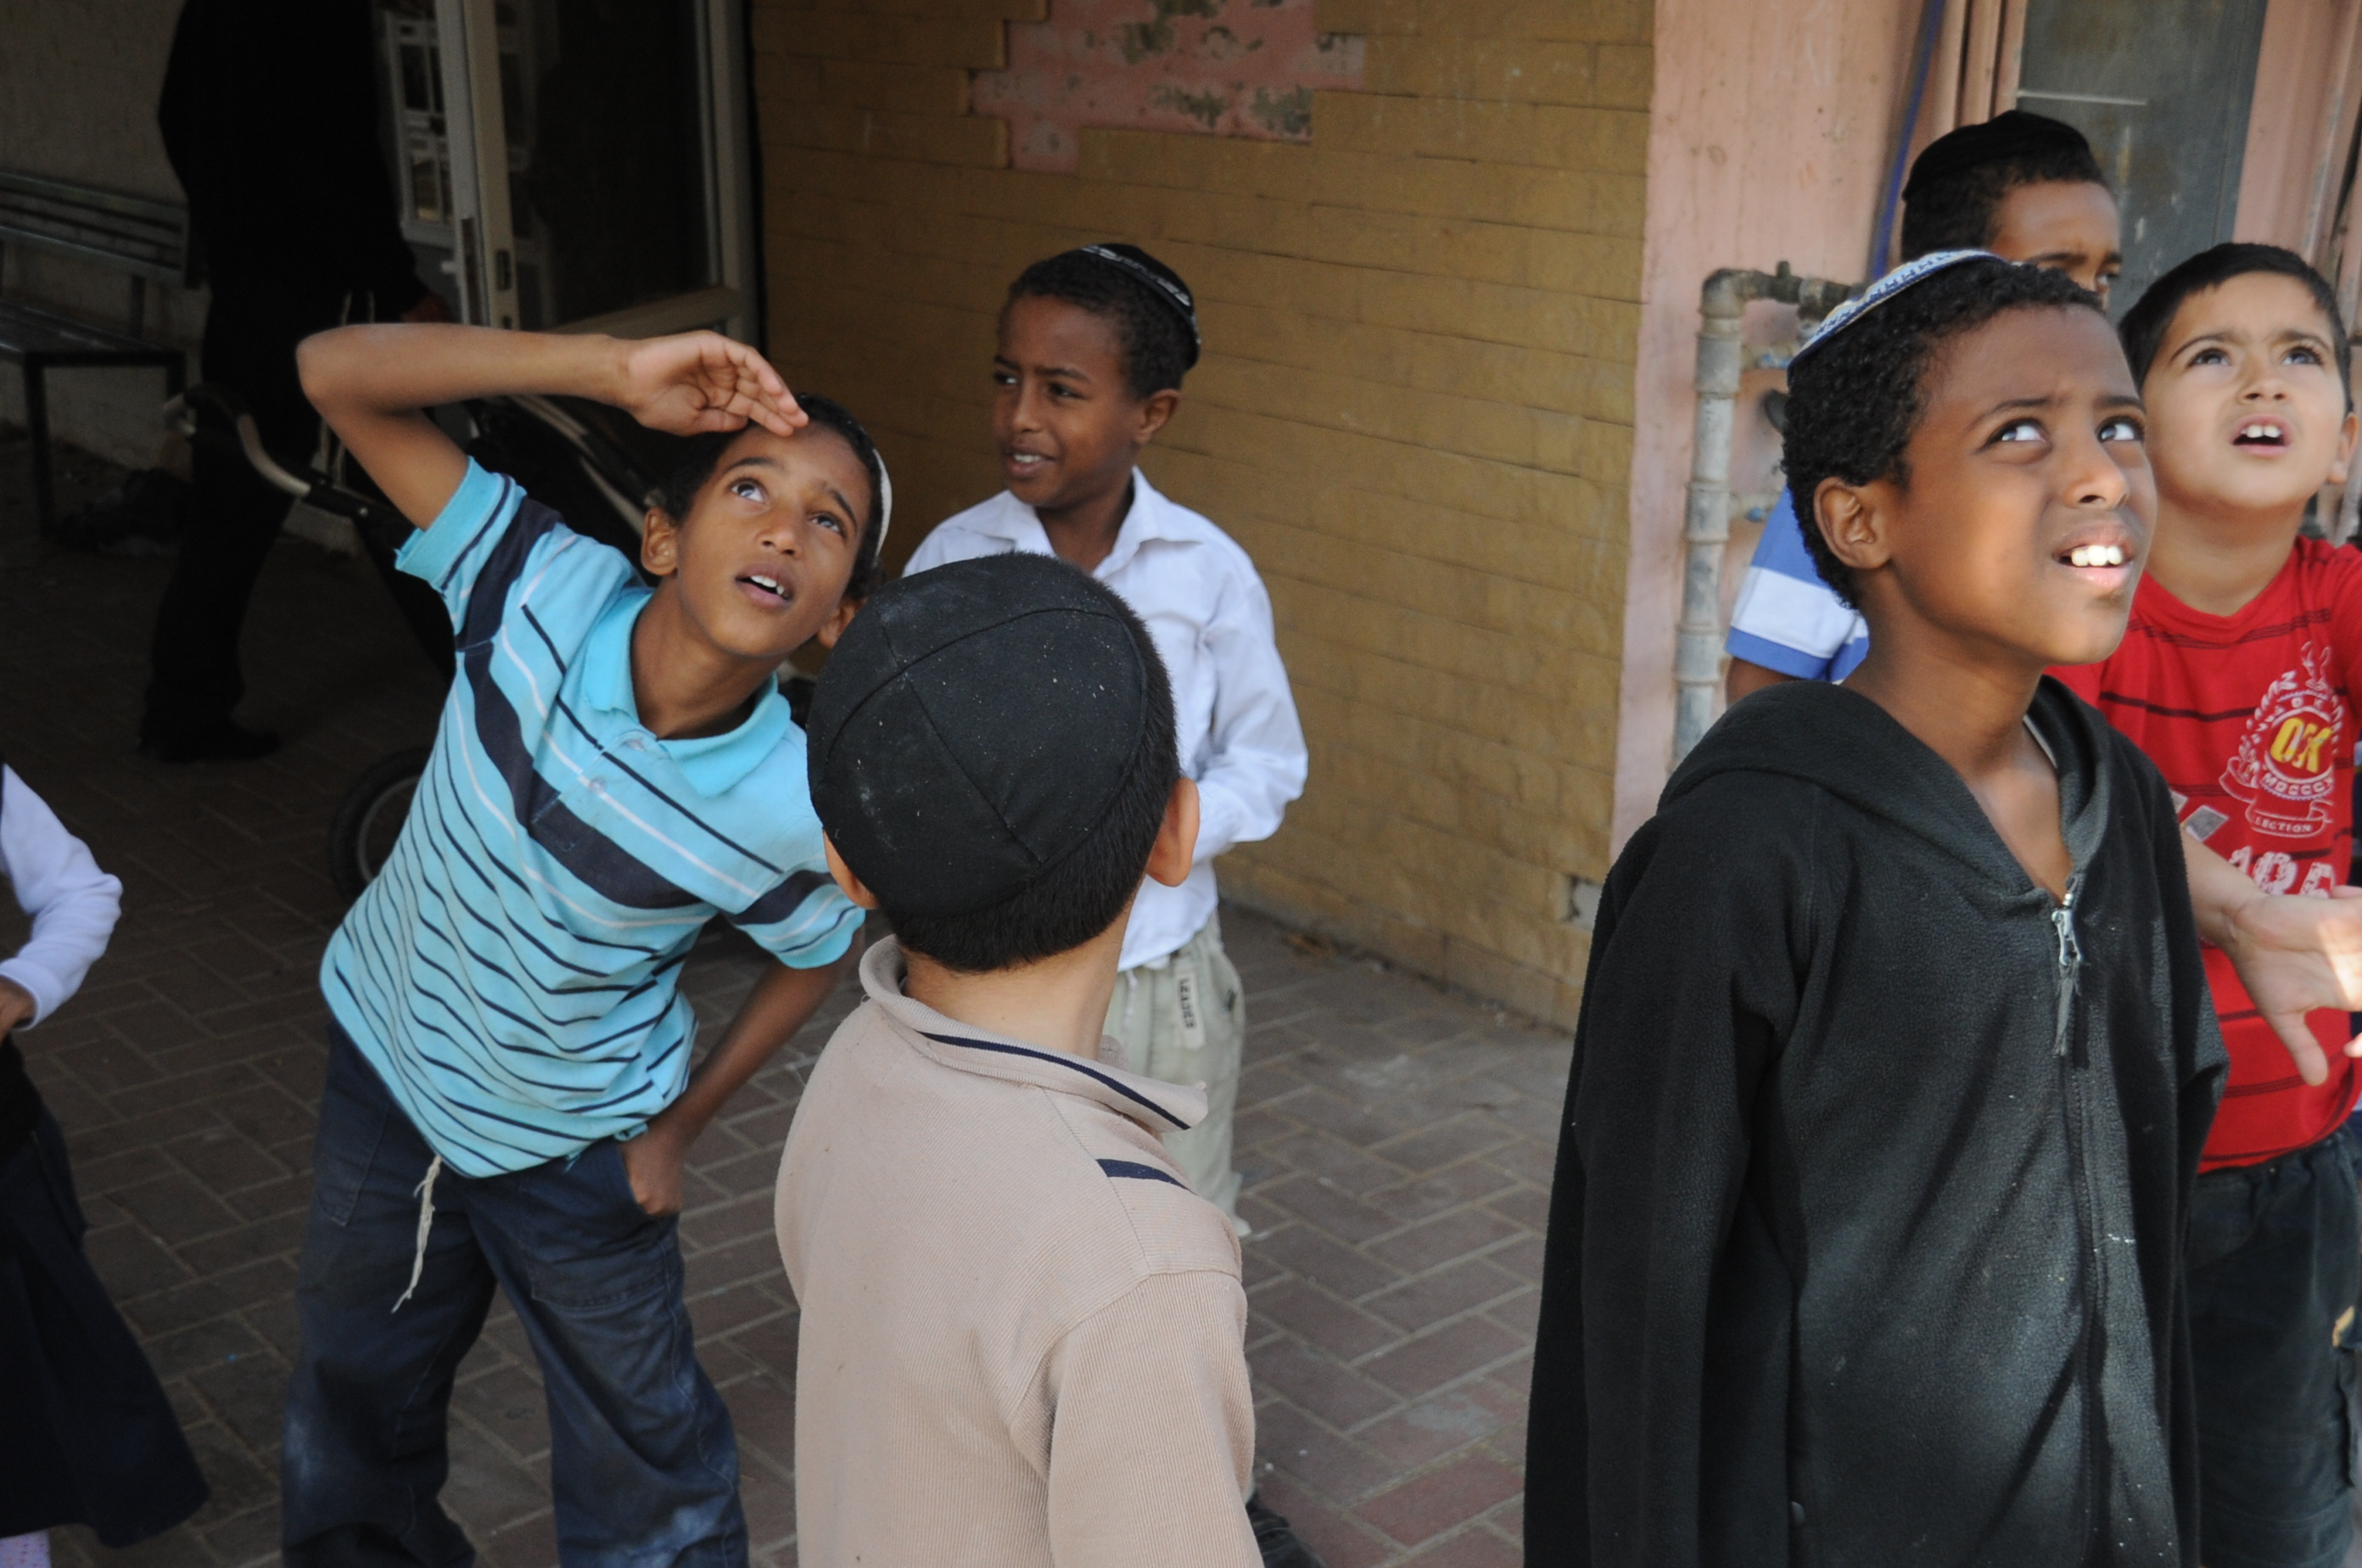 File:Flickr - Israel Defense Forces - Children in Town Under Fire by  Rockets from Gaza.jpg - Wikimedia Commons